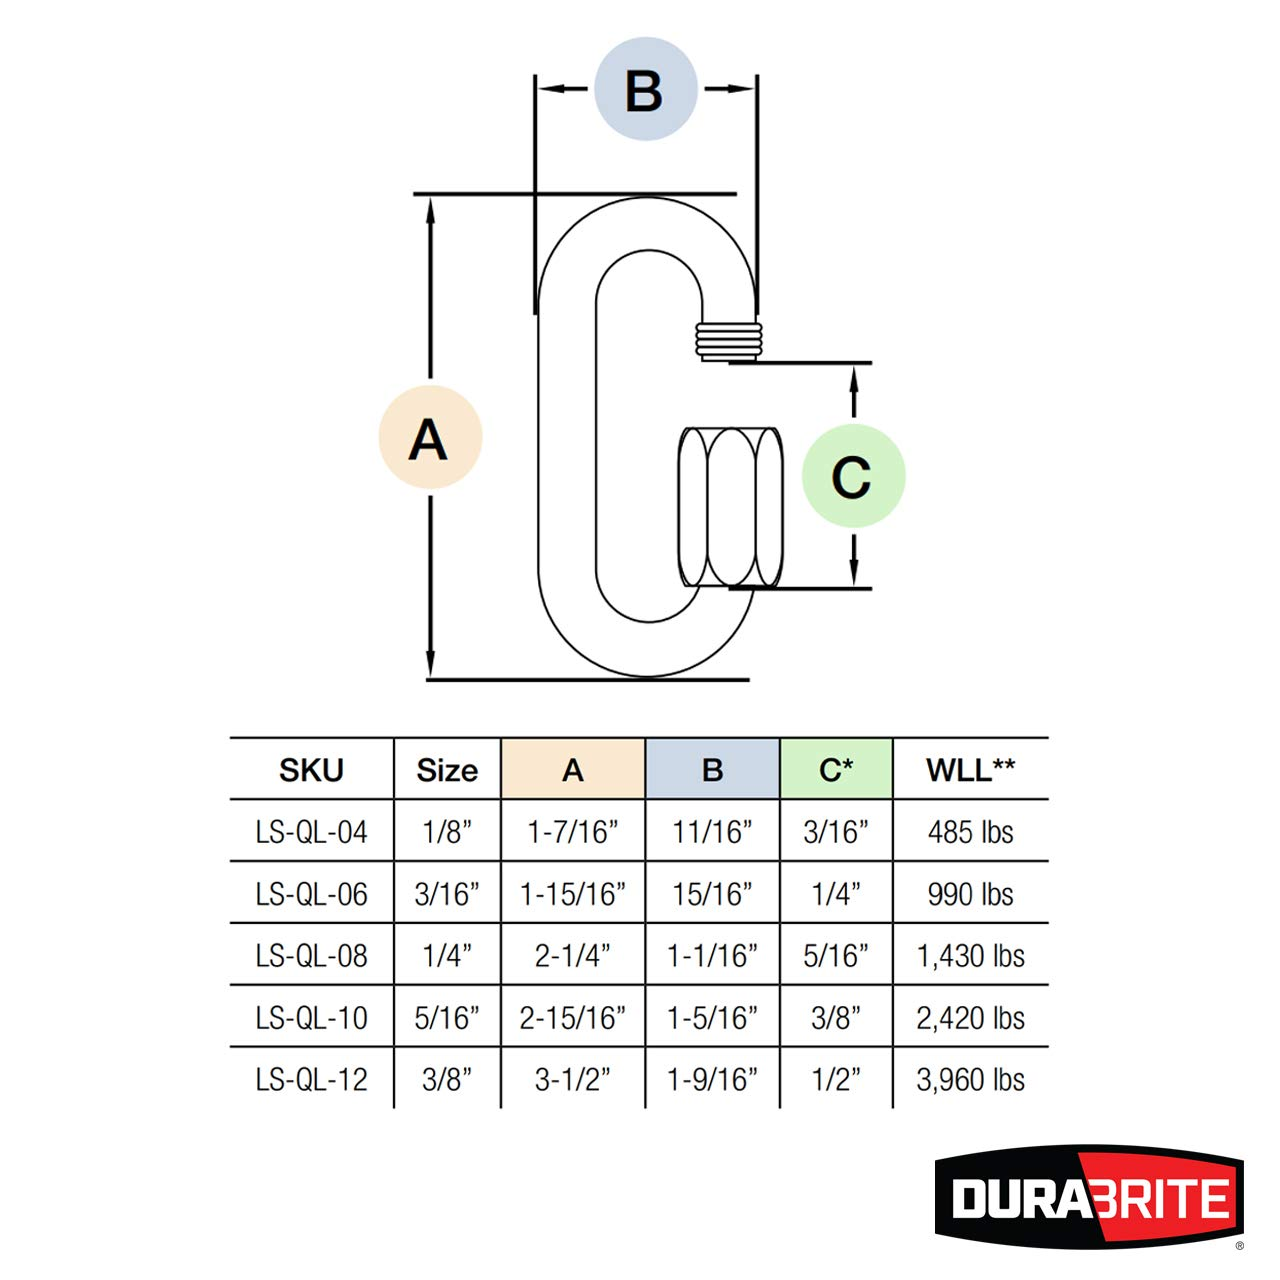 DuraBrite 316 Stainless Steel Oval Quick Links 1/4'' - Chain Connectors, Marine Grade (Pack of 25)